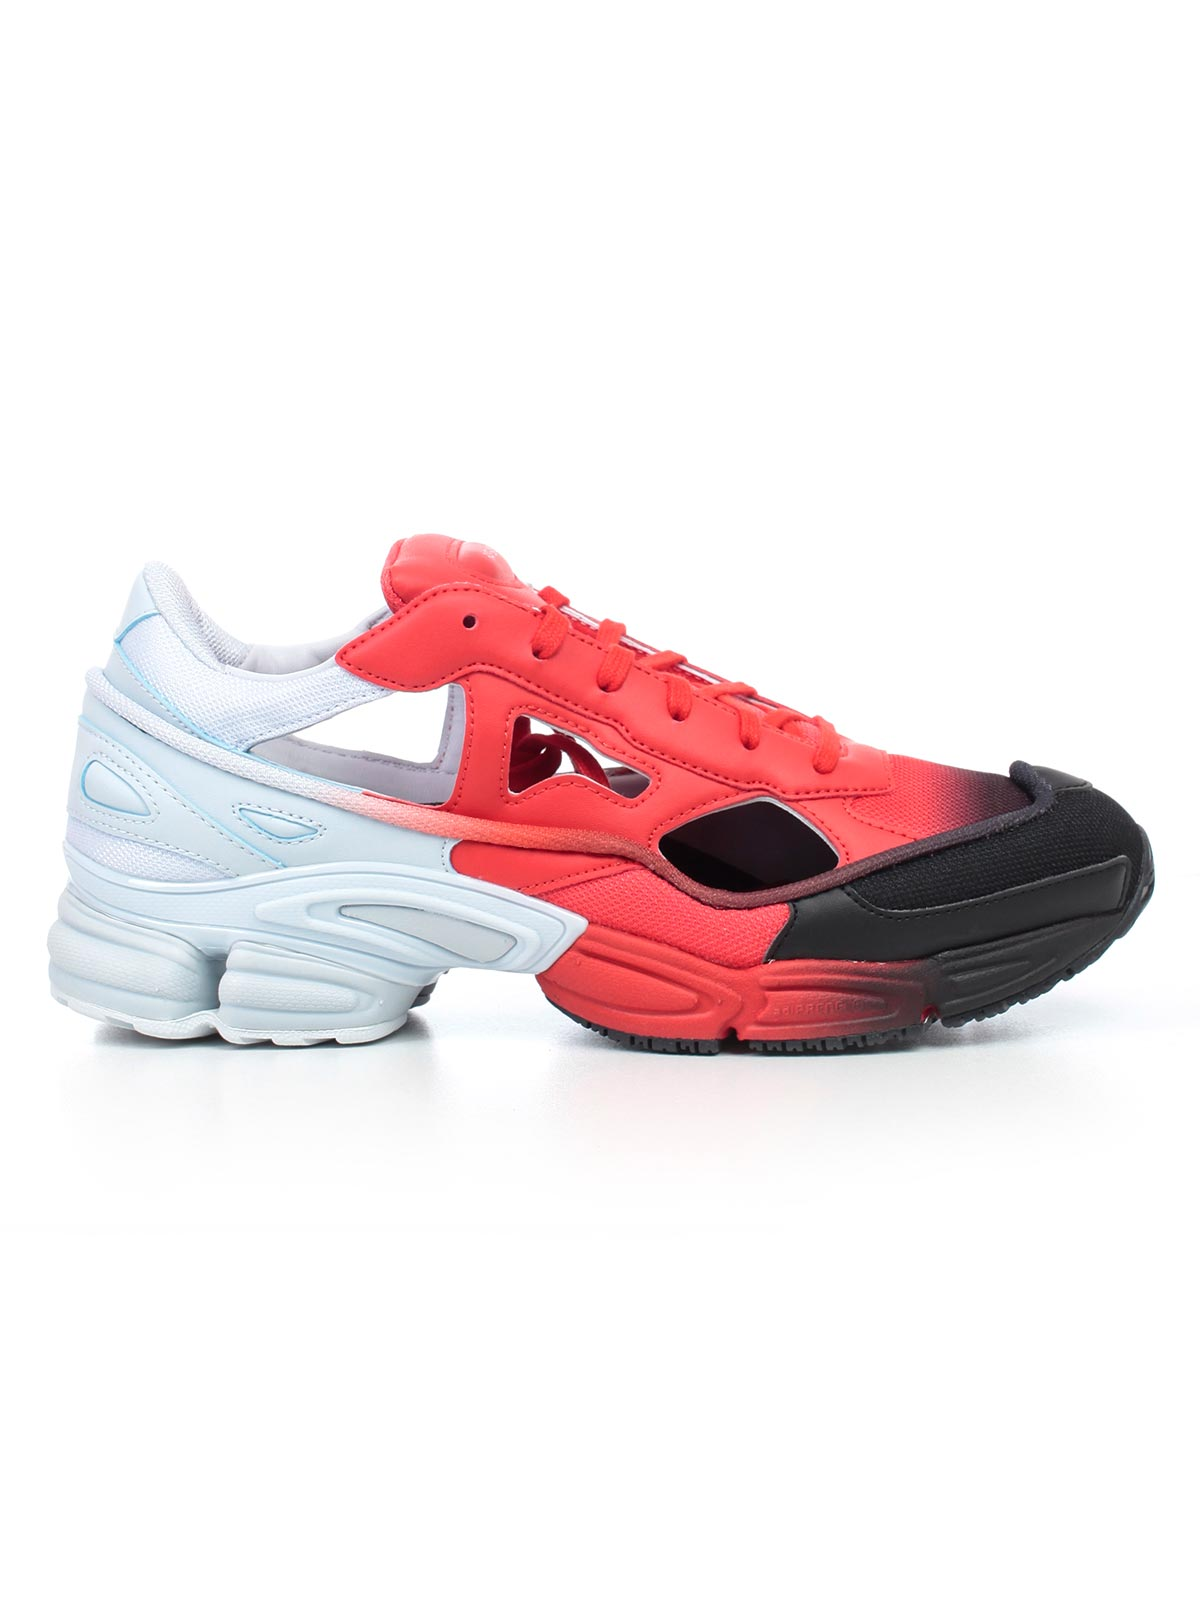 best deals on running shoes 100% high quality Adidas X Raf Simons Shoes